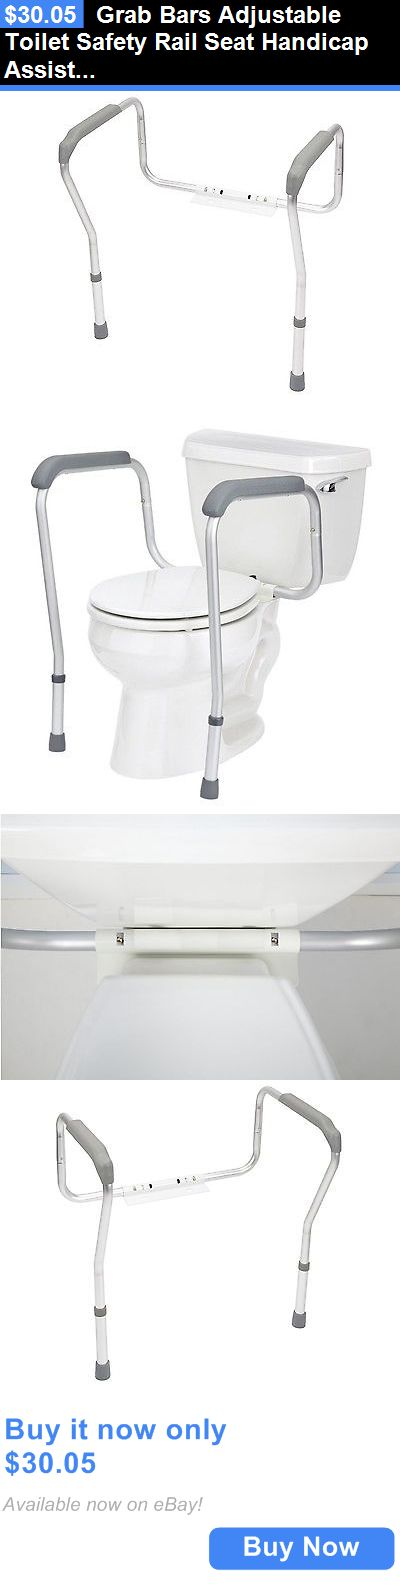 other fixtures grab bars adjustable toilet safety rail seat handicap assist disable bathroom buy